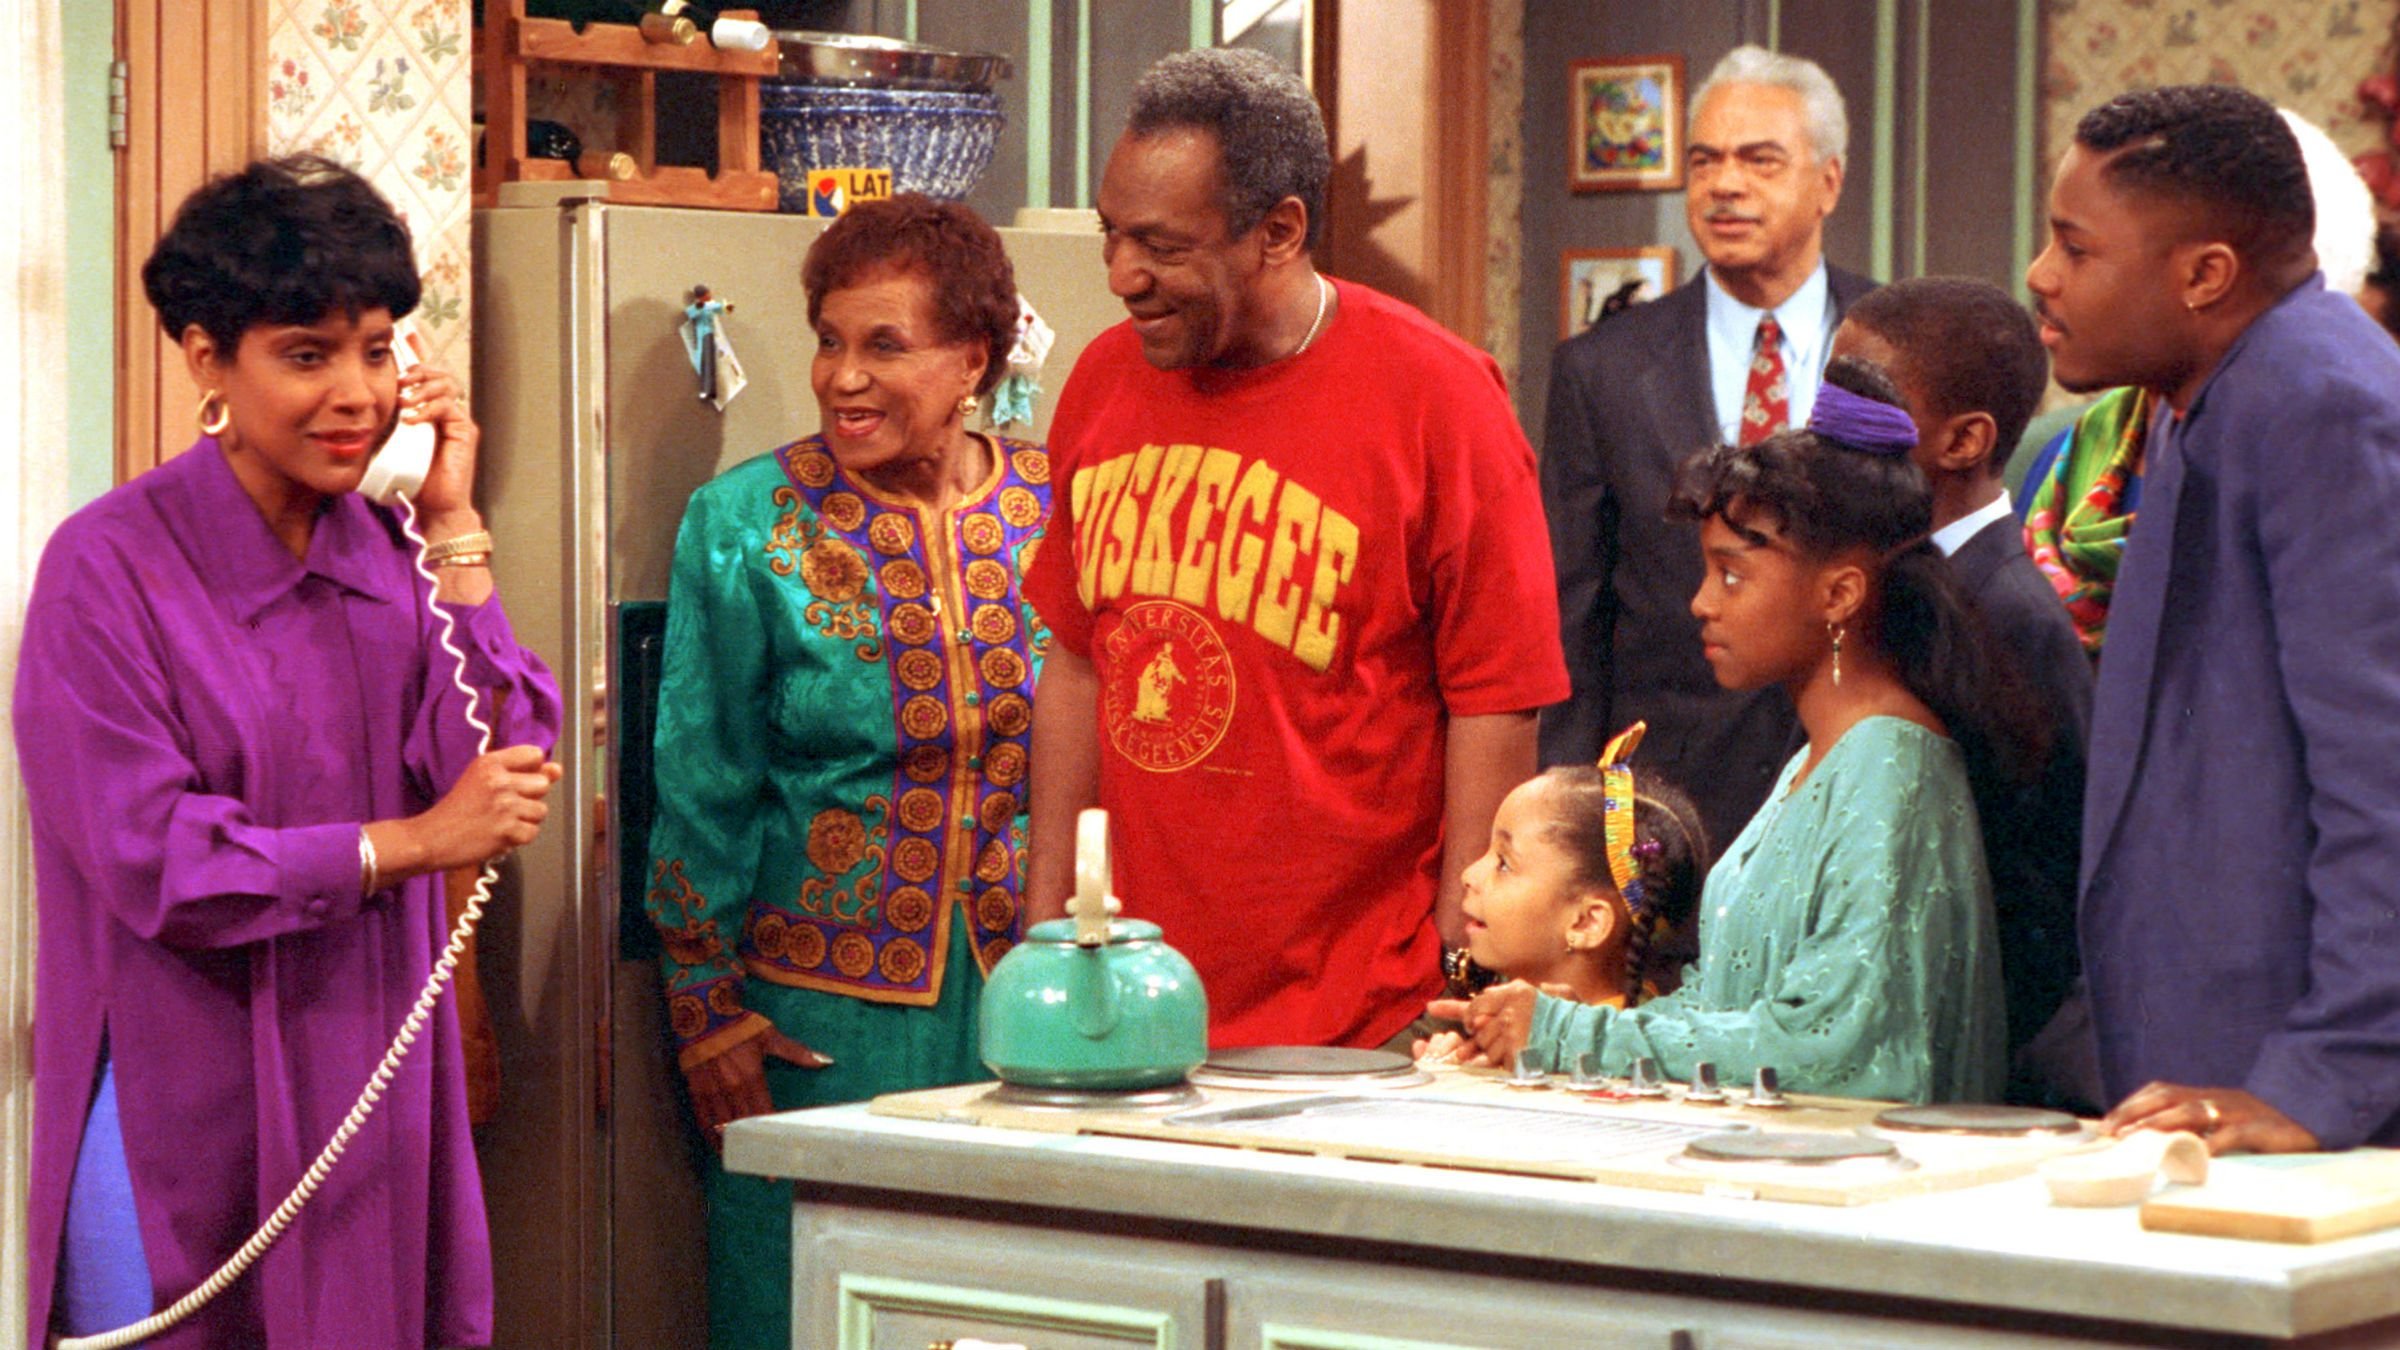 """Phylicia Rashad, as Clair Huxtable, talks on the telephone while Bill Cosby, as Dr. Cliff Huxtable and other cast members of the family sitcom """"The Cosby Show"""" gather around during taping of the final episode in New York City, Friday, March 6, 1992. From left clockwise are, Rashad; Clarice Taylor as Anna Huxtable; Cosby; Earl Hyman as Russel Huxtable; unidentified actor, partially hidden; Malcolm Jamal Warner as Theo; Keshia Knight Pulliam as Rudy; and Raven Symone as Olivia. (AP Photo)"""